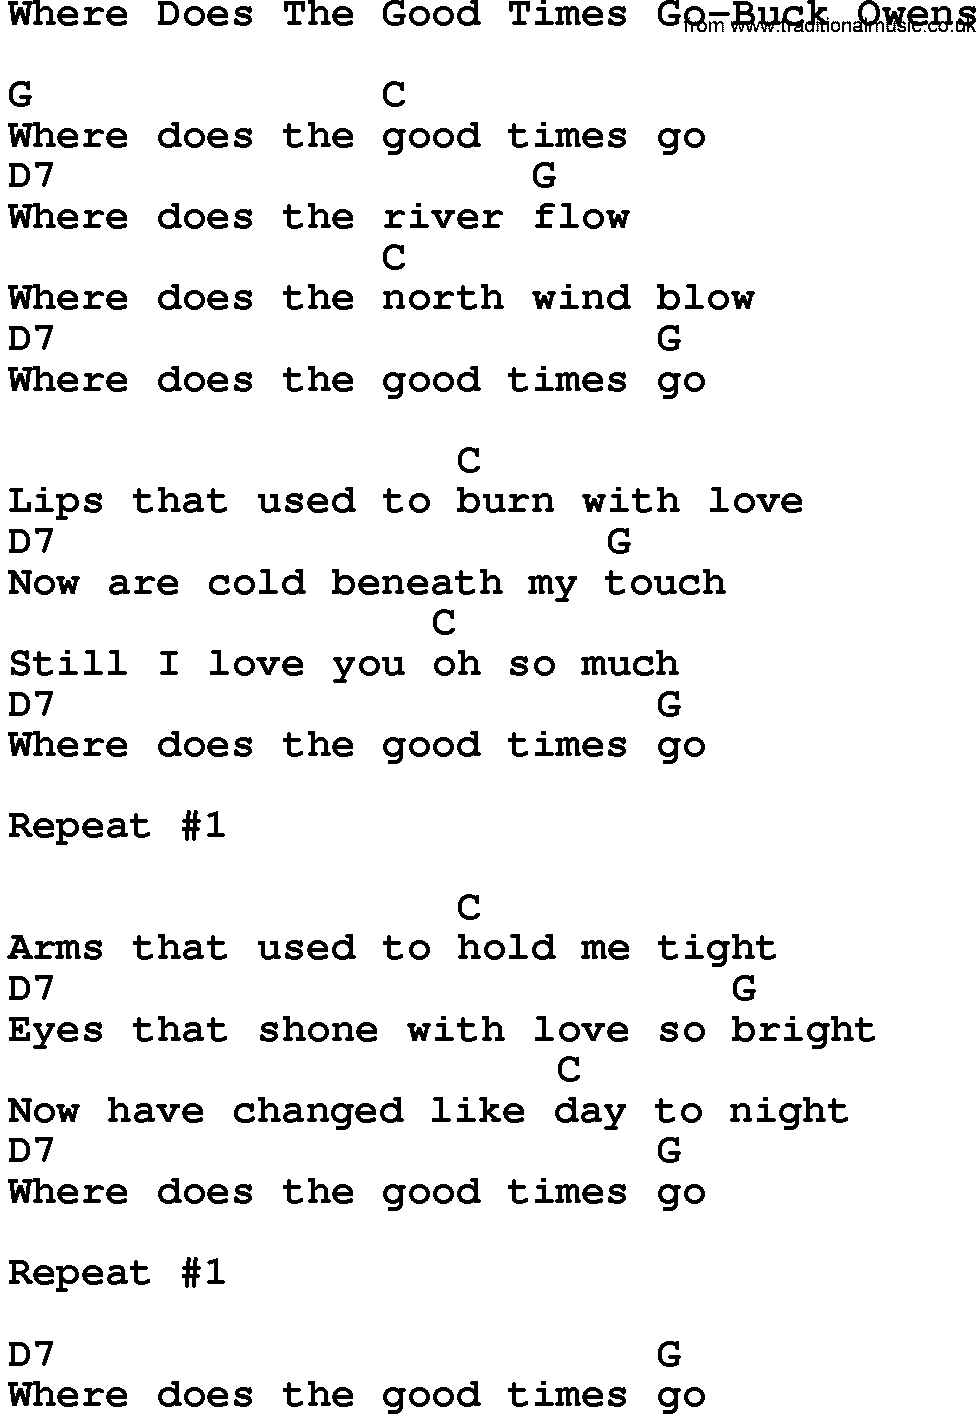 Country Musicwhere Does The Good Times Go Buck Owens Lyrics And Chords